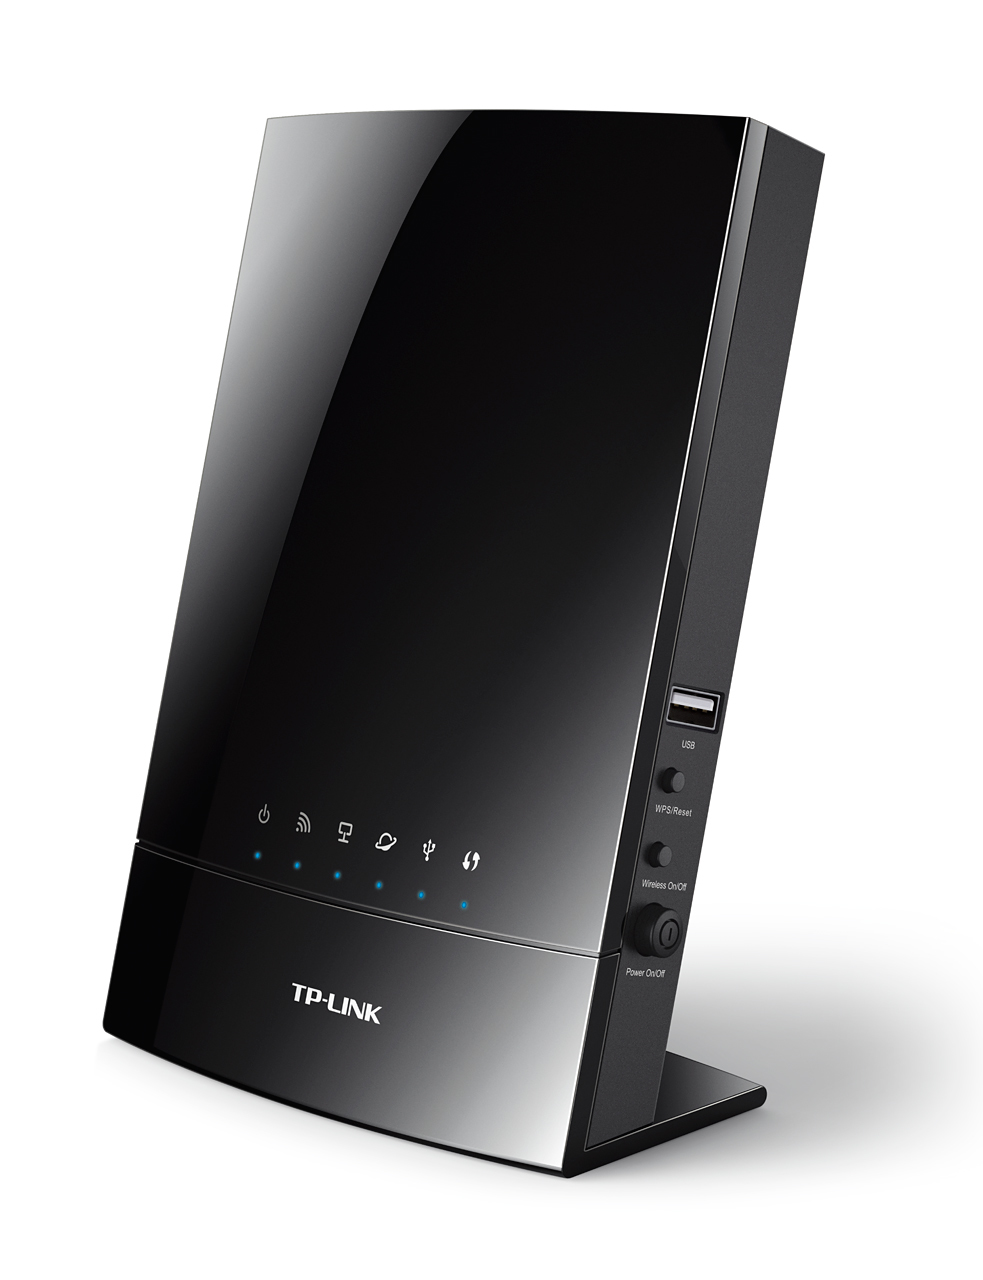 TP-LINK Archer C20I Dual-band (2.4 GHz / 5 GHz) Fast Ethernet wireless router